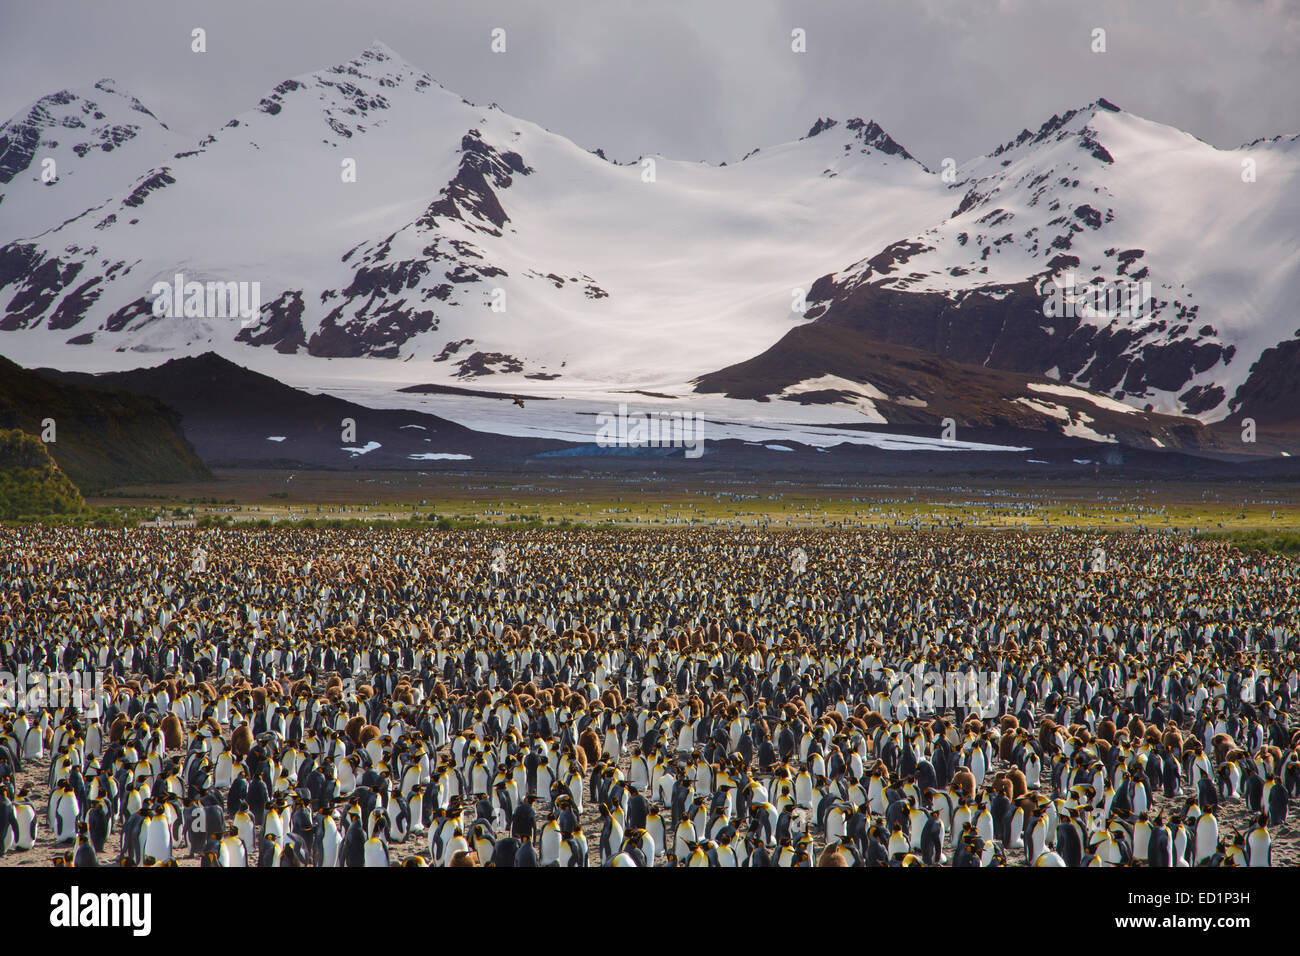 King penguins (Aptenodytes patagonicus) on the Salisbury Plain, South Georgia, Antarctica. - Stock Image